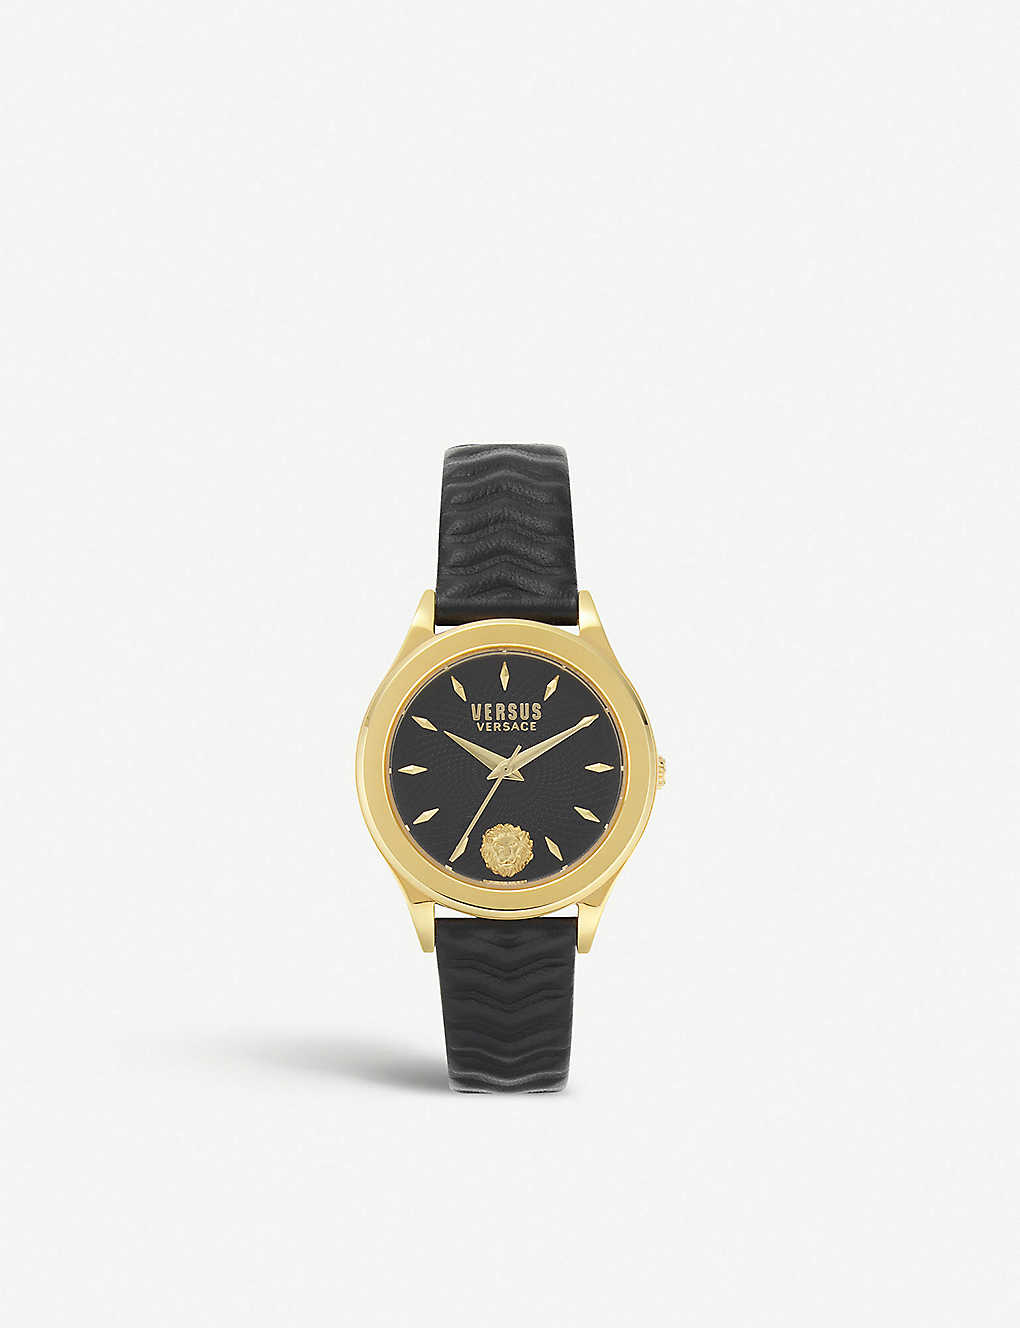 VERSUS: VSP560318 Mount Pleasant yellow gold-plated and leather strap watch